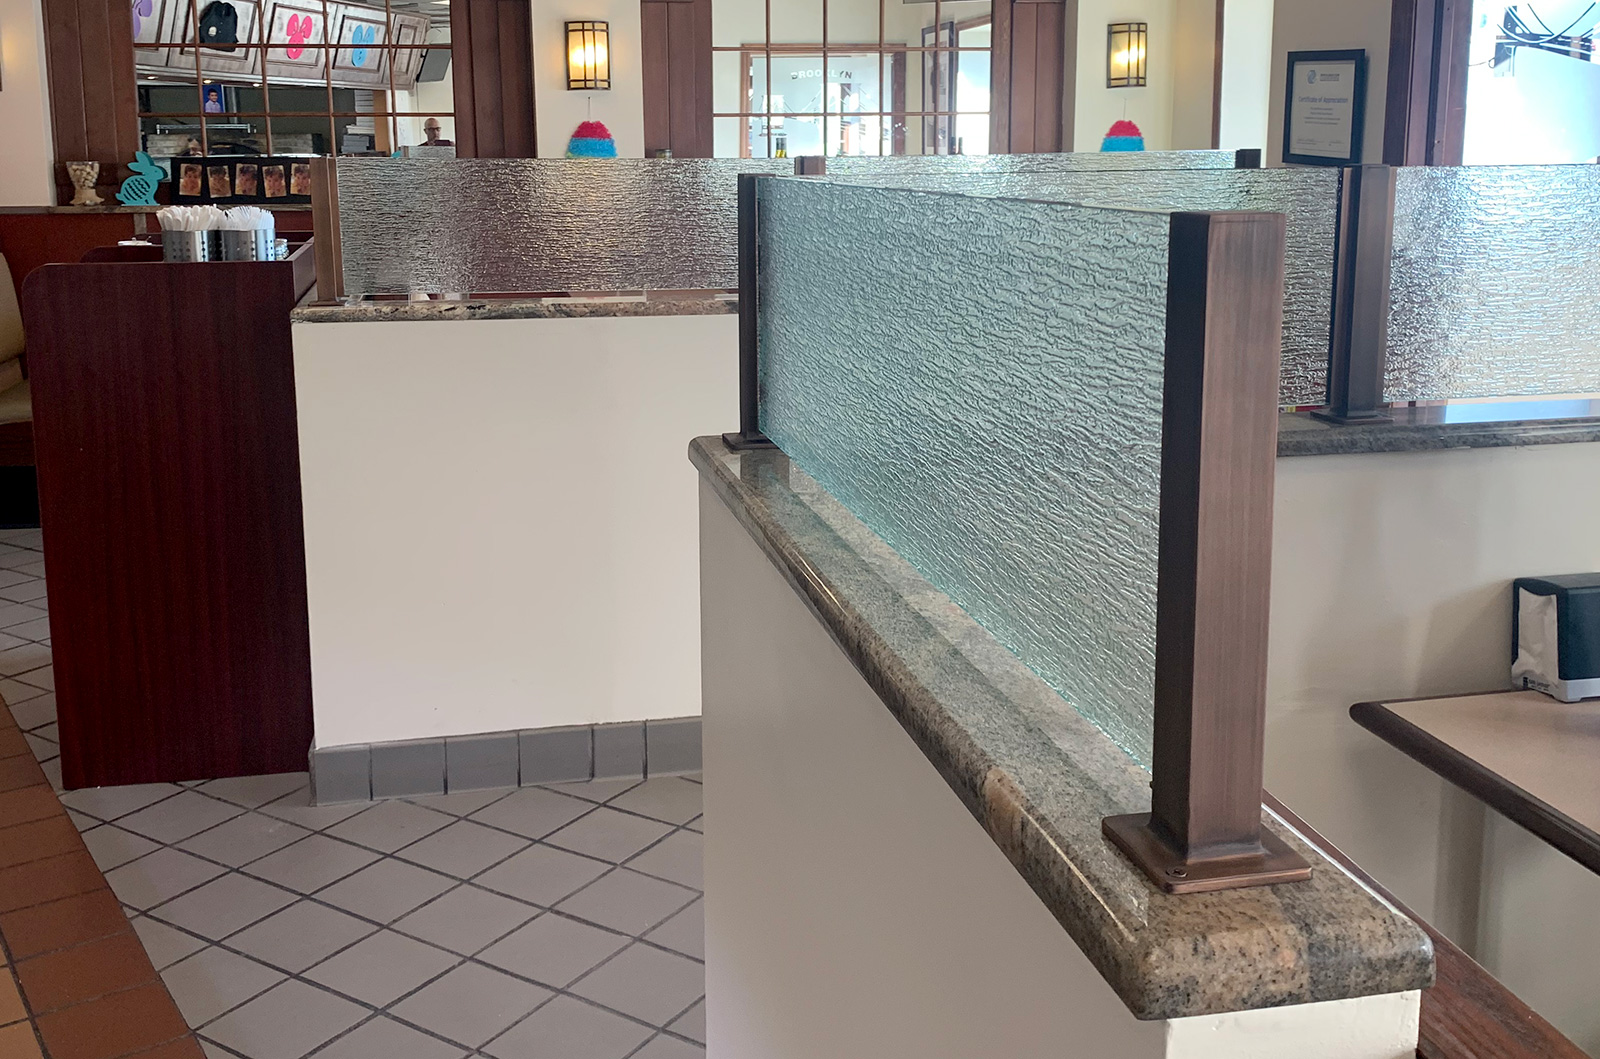 Antique Bronze Partition Posts with Waved Glass | Pietro's Brick Oven Pizzeria - Oyster Bay, NY